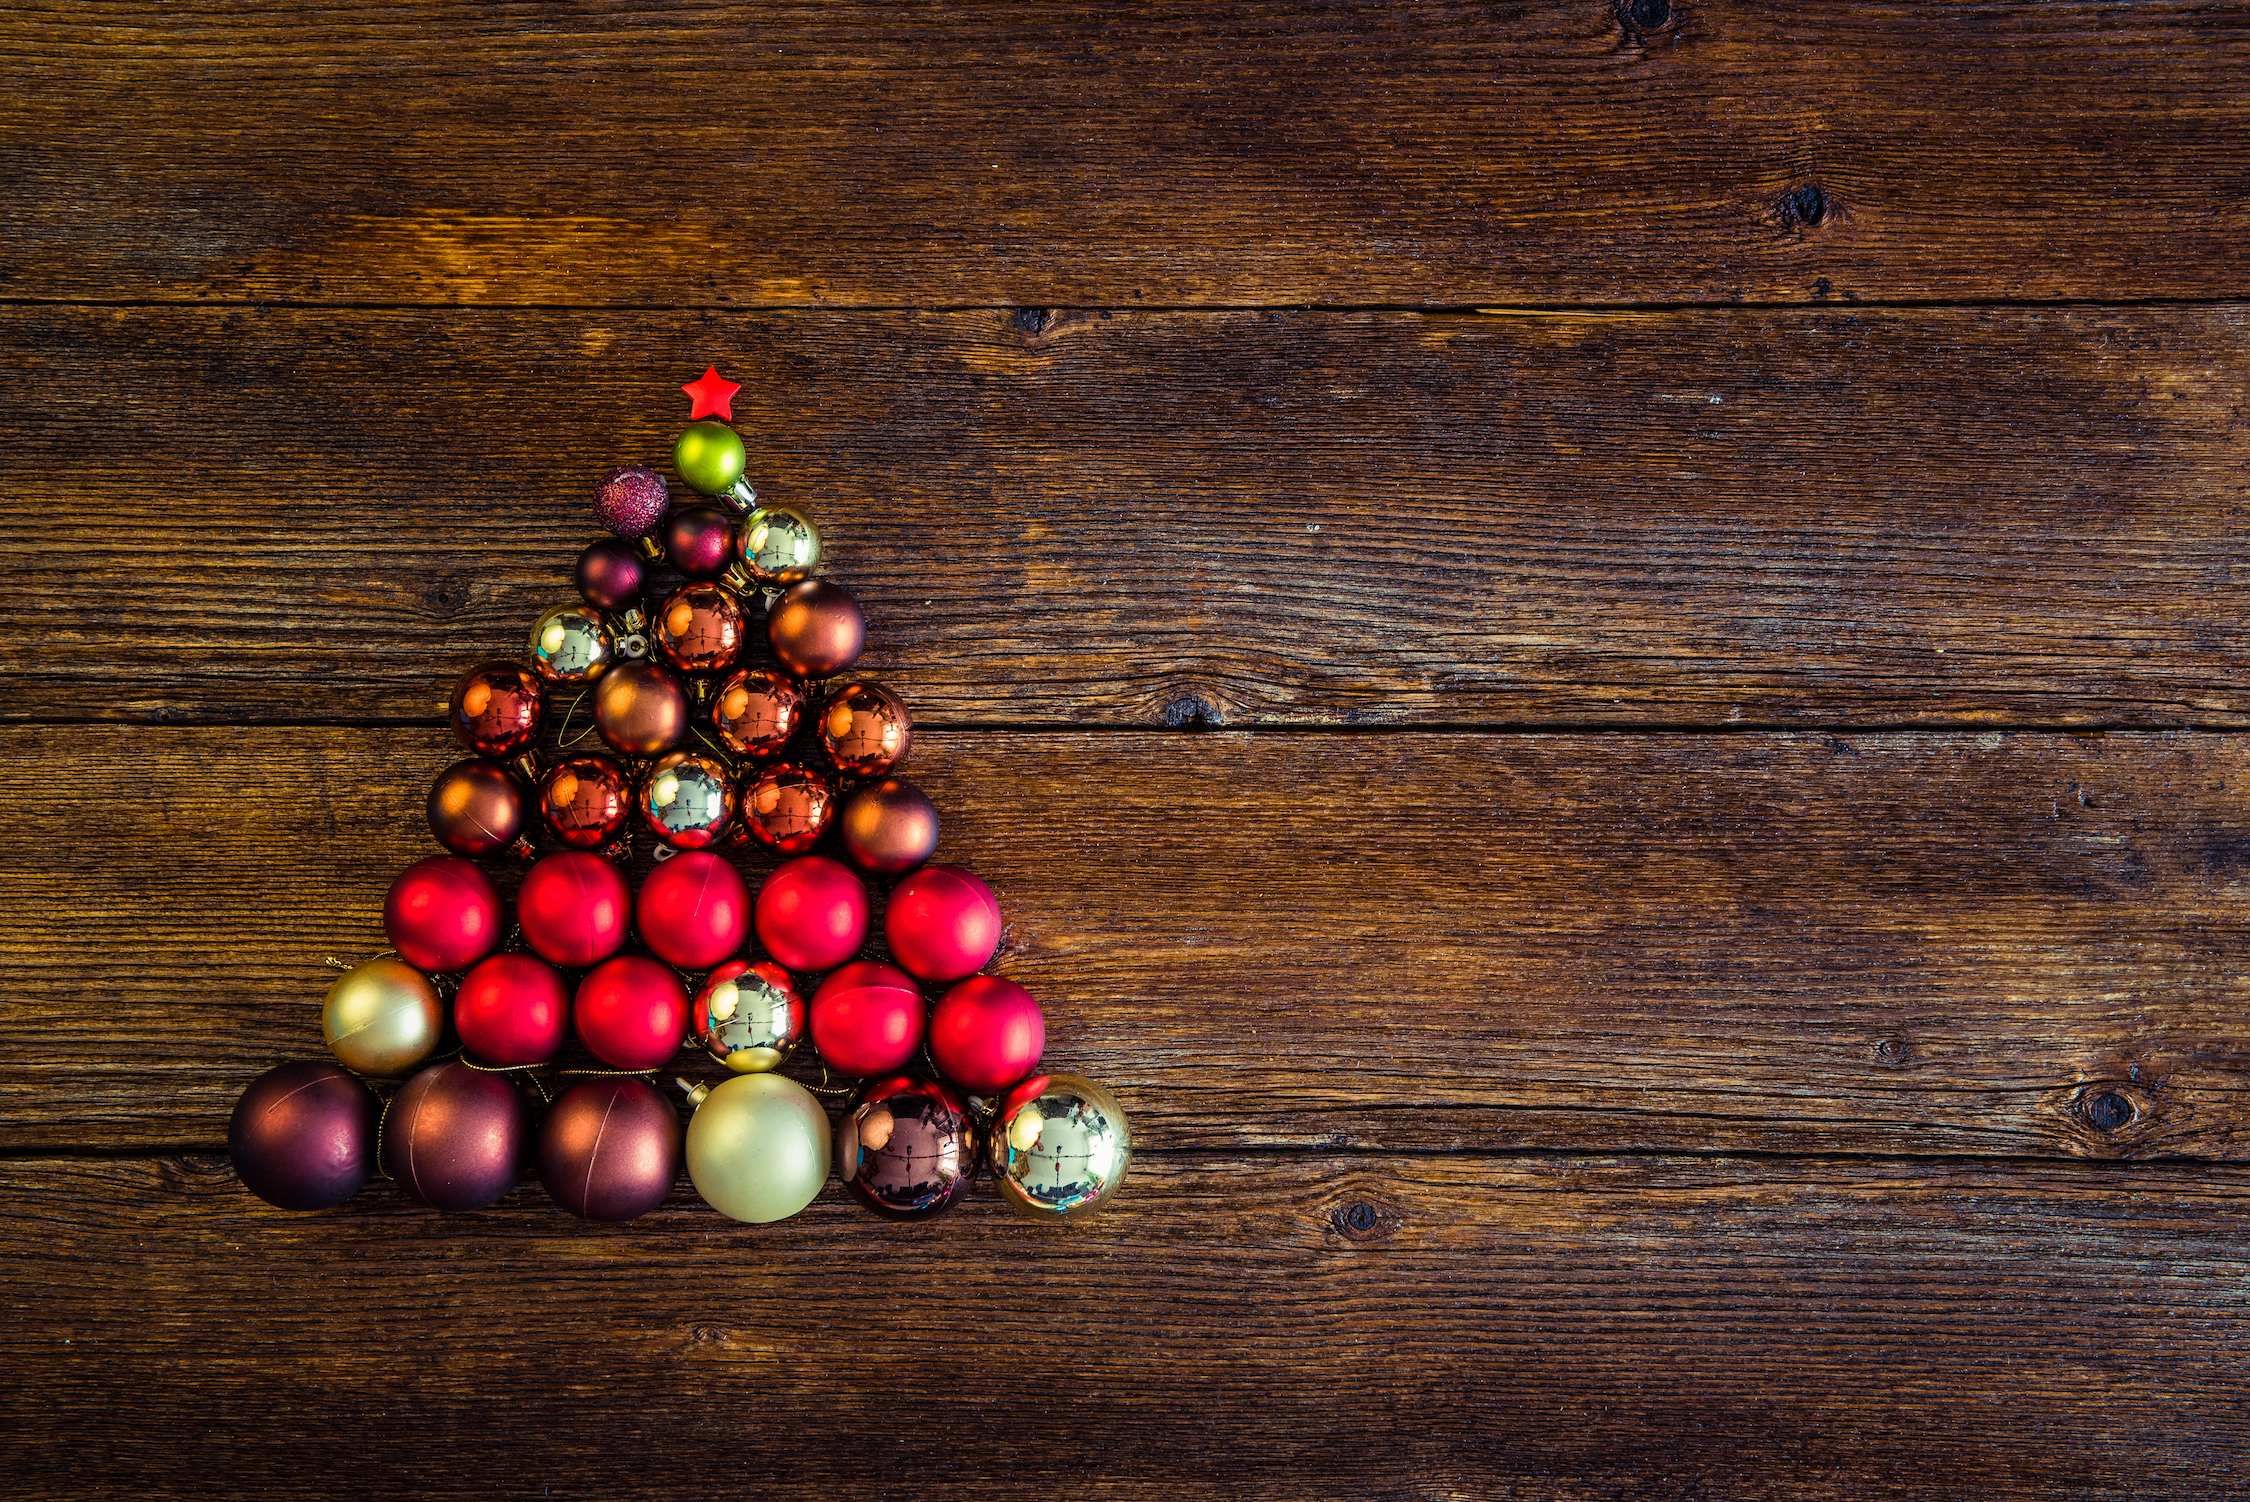 christmas-tree-shaped-design-made-from-christmas-P8HBFTR.jpg